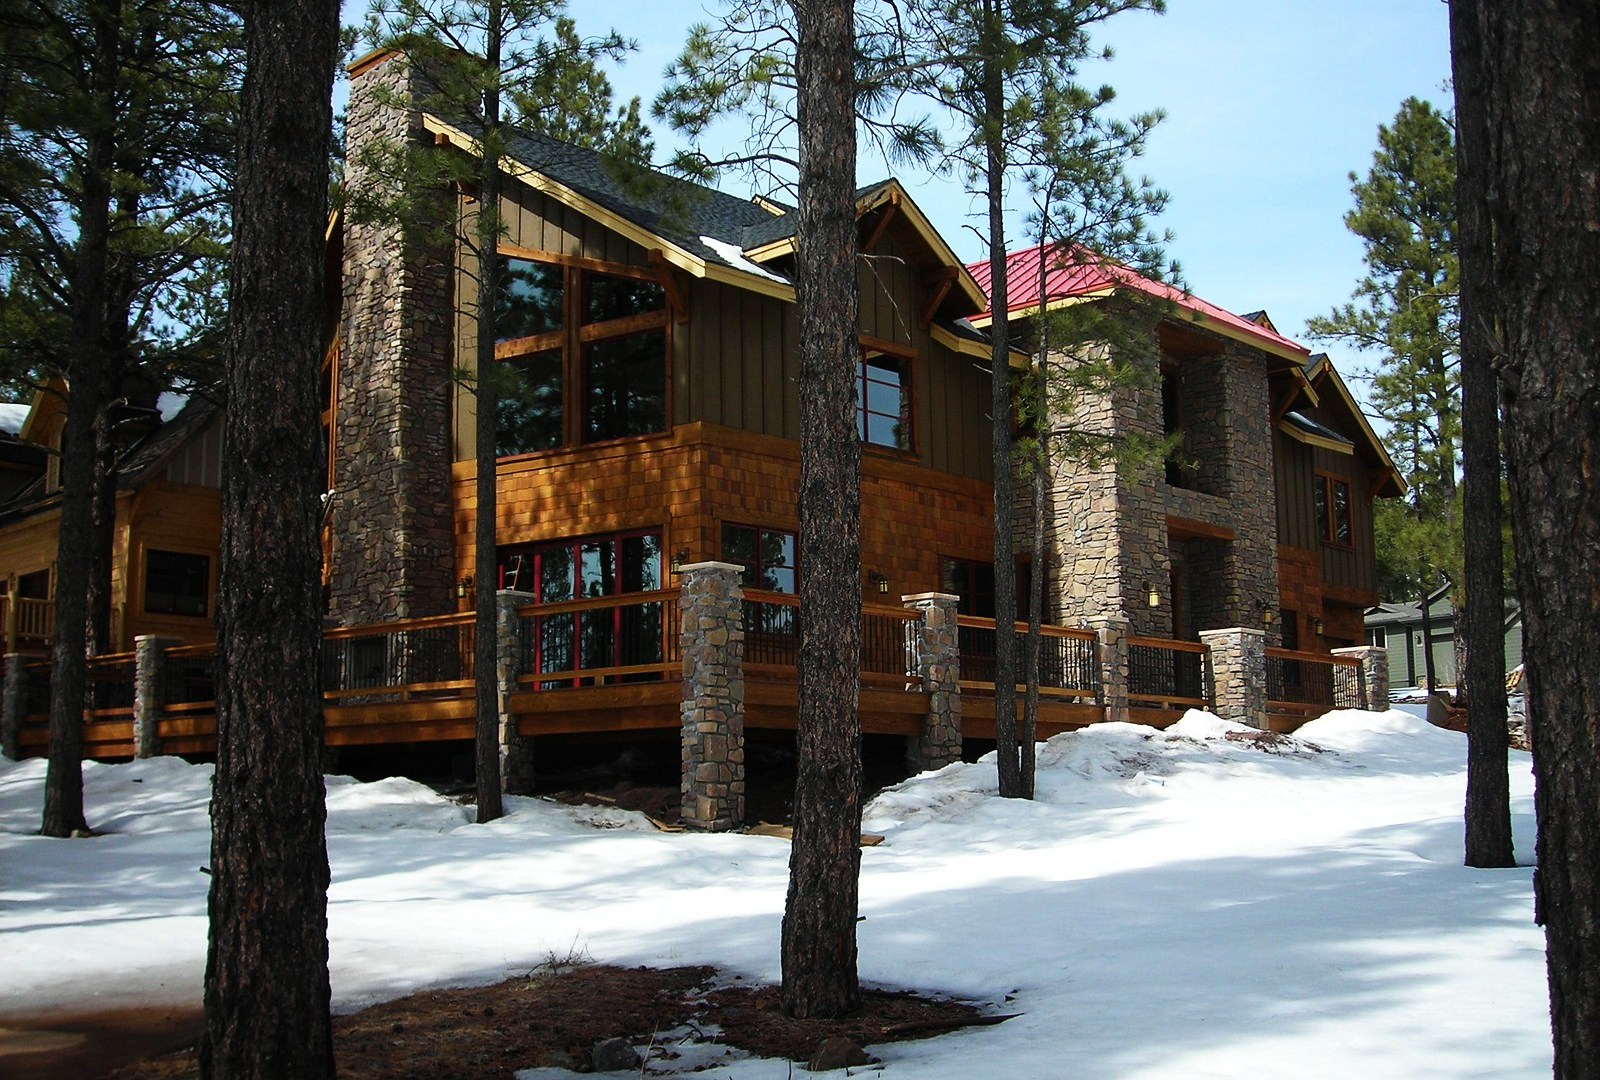 Myles Nelson McKenzie Design-Custom Rustic Home Design-4745 West Braided Rein, Flagstaff Arizona